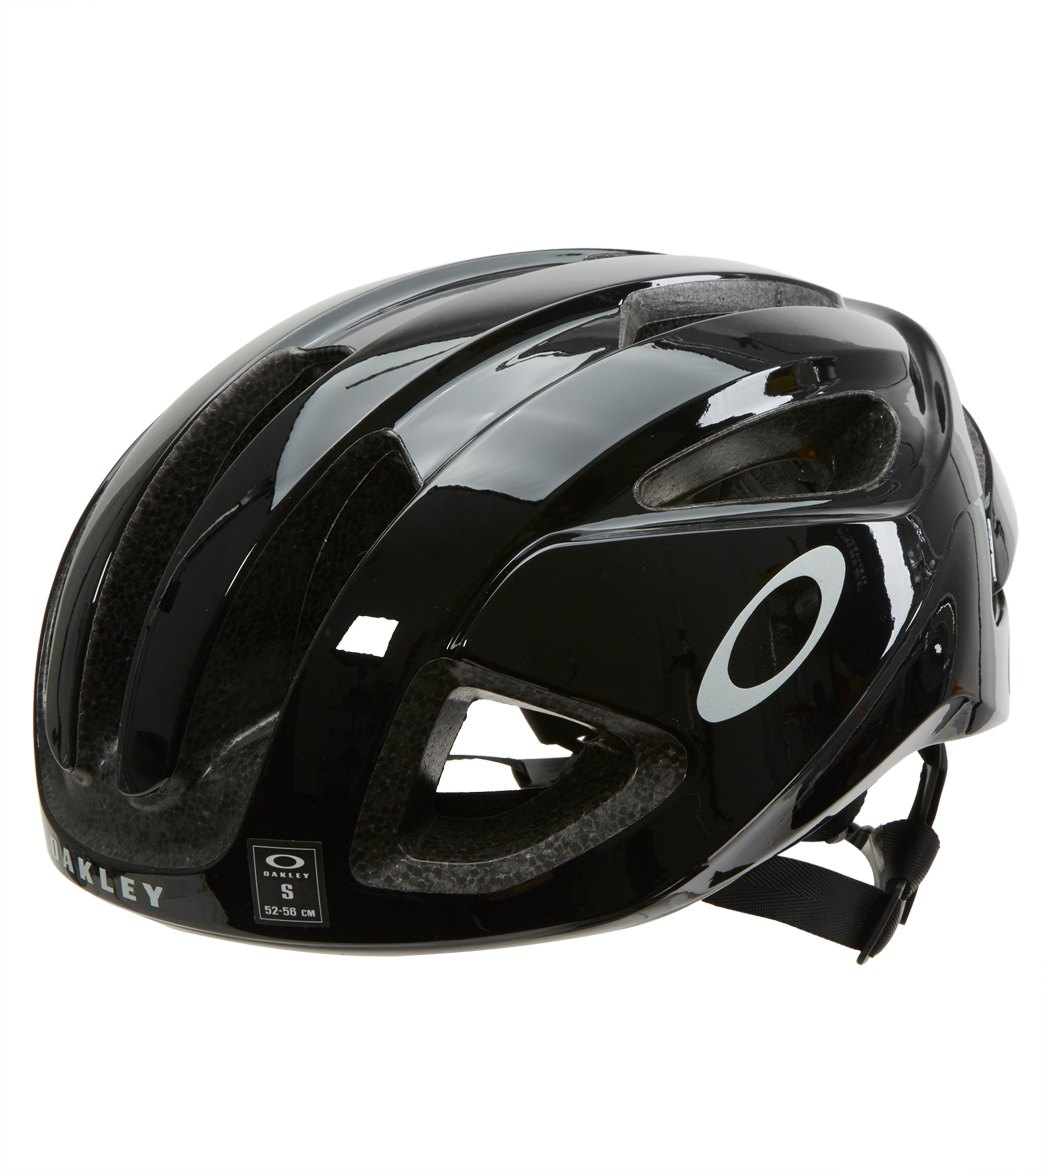 fa3816c35af Oakley Men s ARO3 Cycling Helmet at SwimOutlet.com - Free Shipping